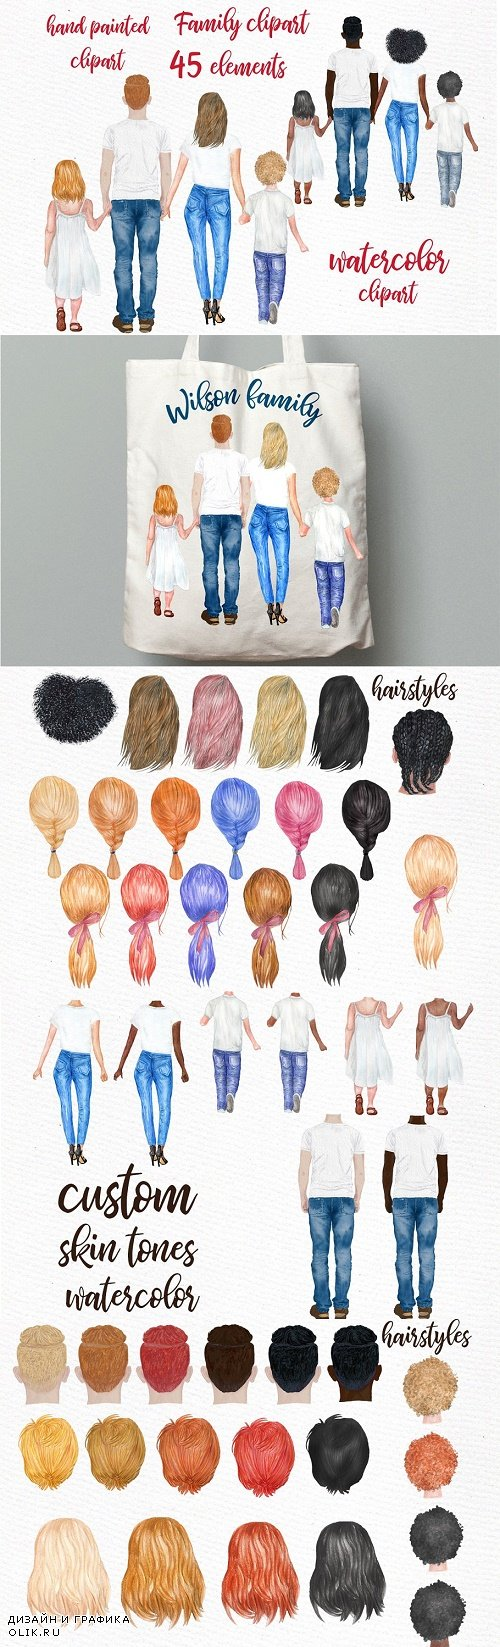 Family clip art Watercolor people - 3813731